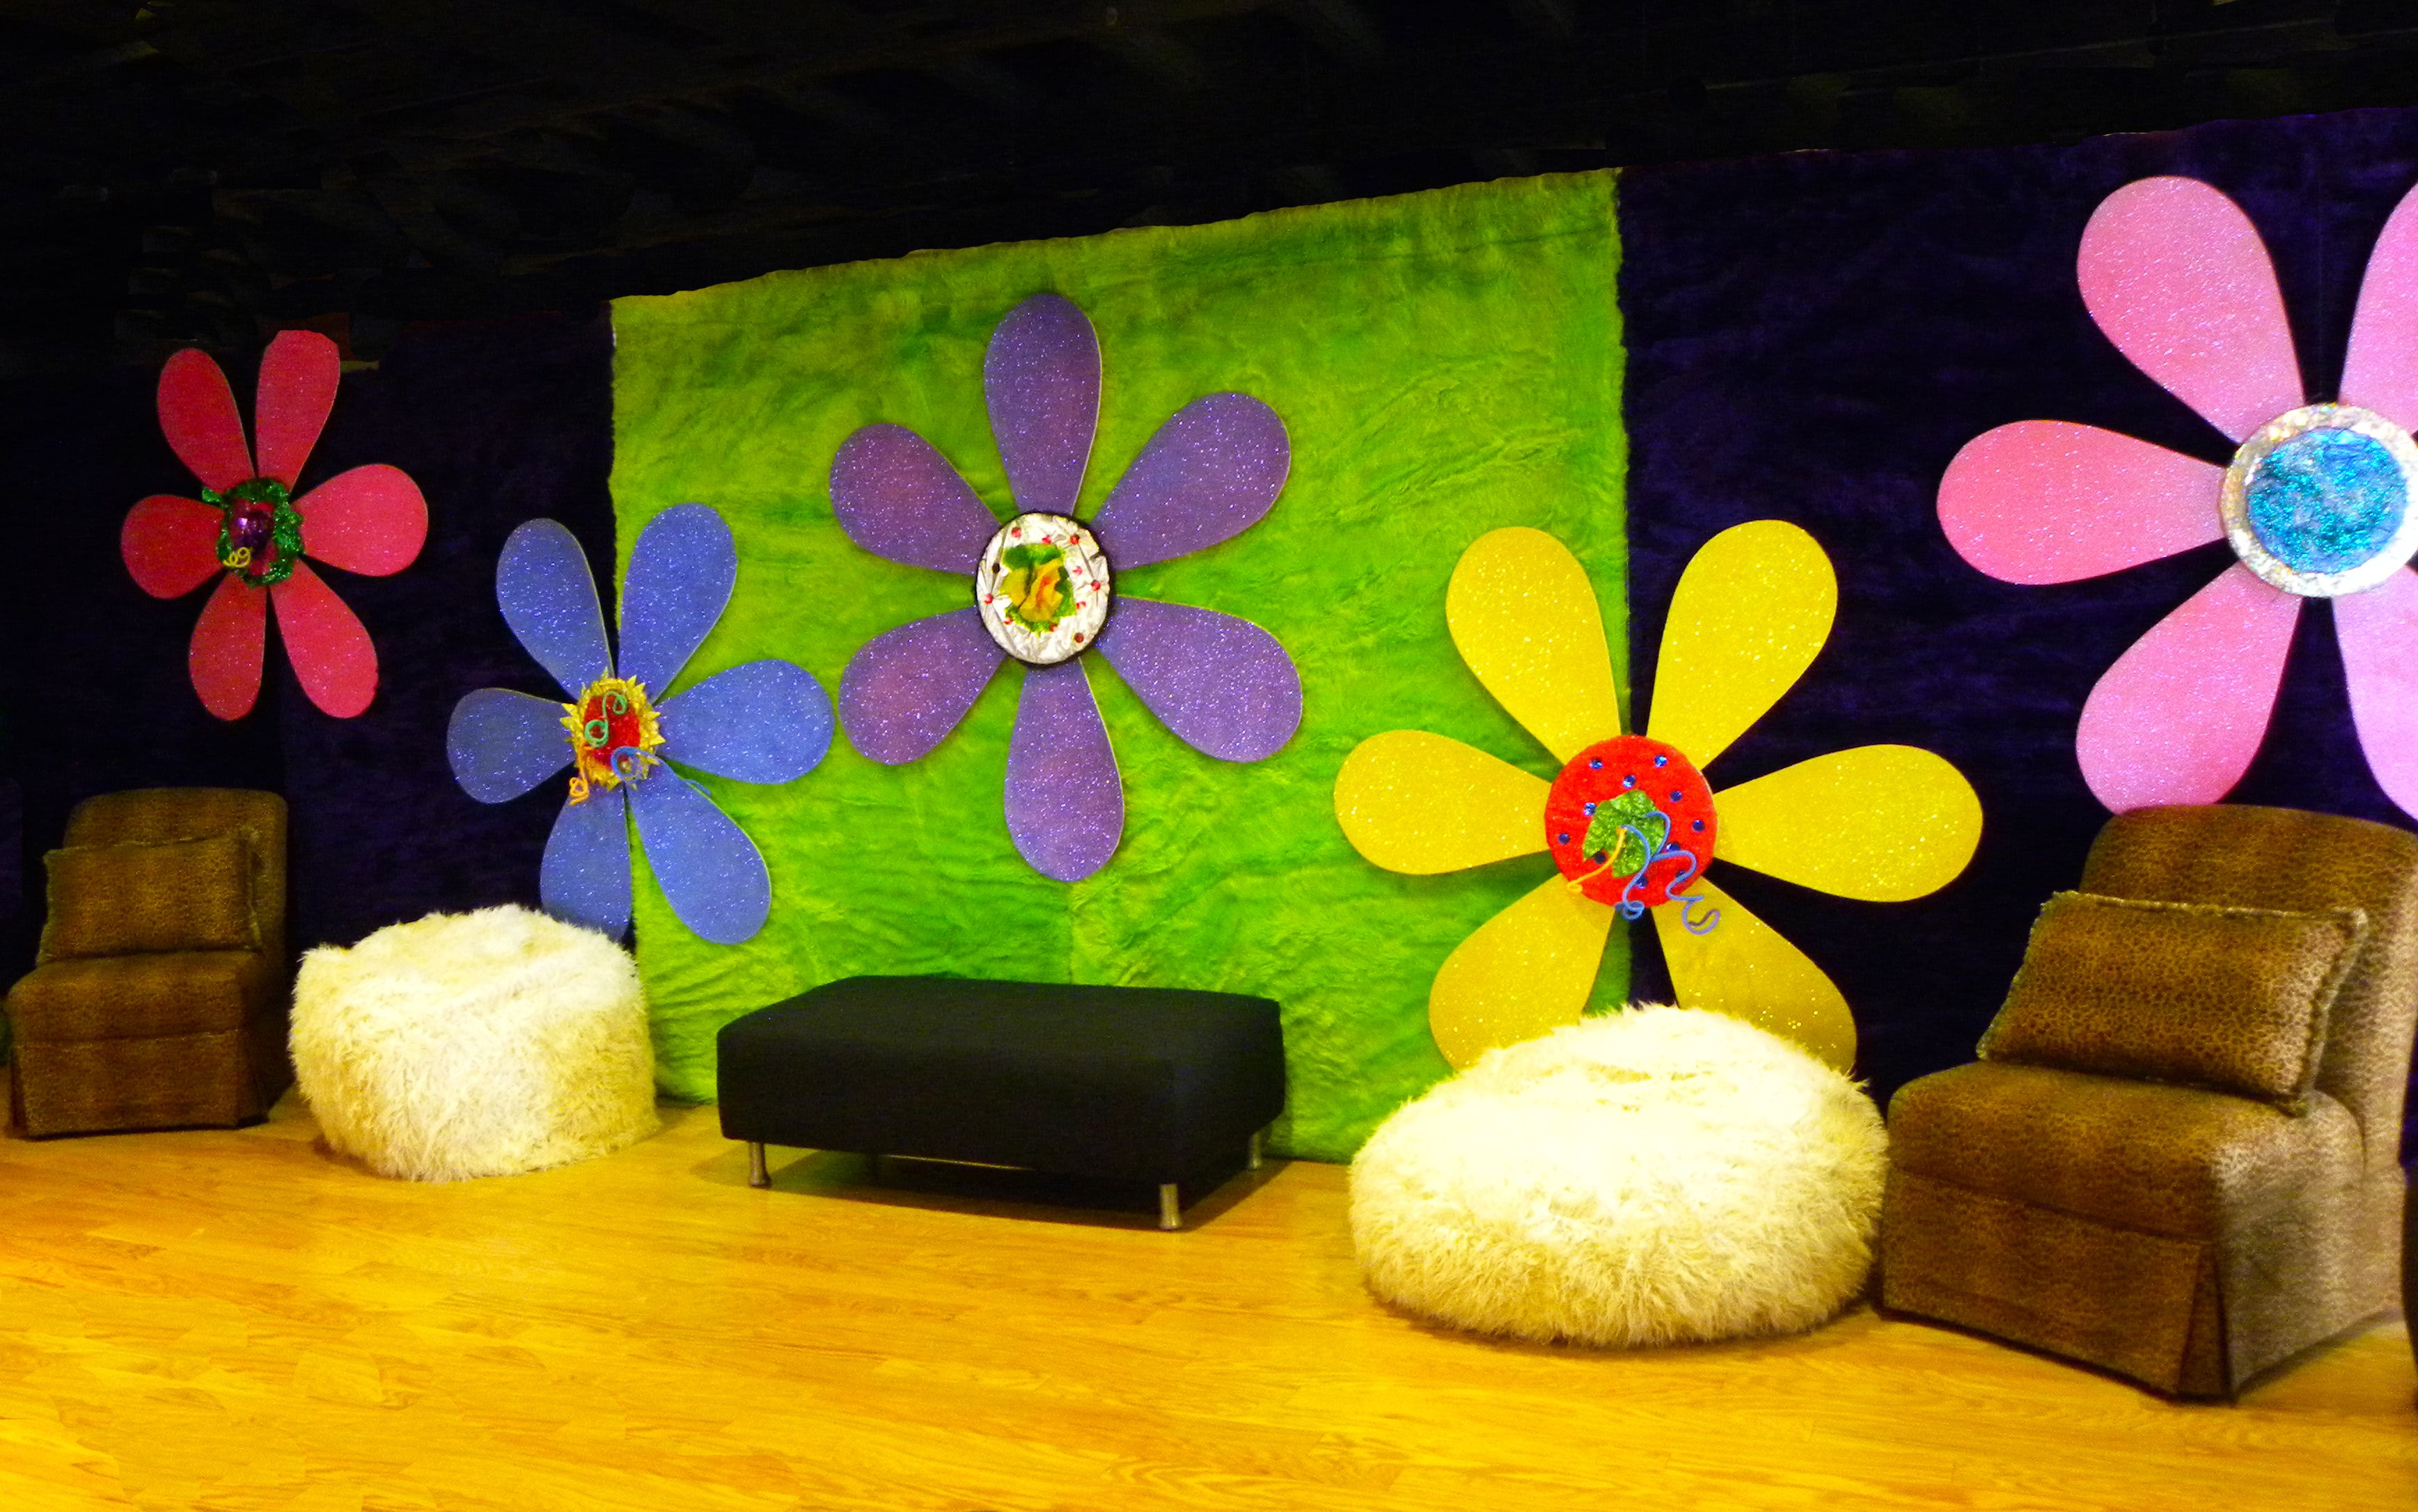 Groovy flower backdrop with retro seating party theme 70s shag decor eventuresinc